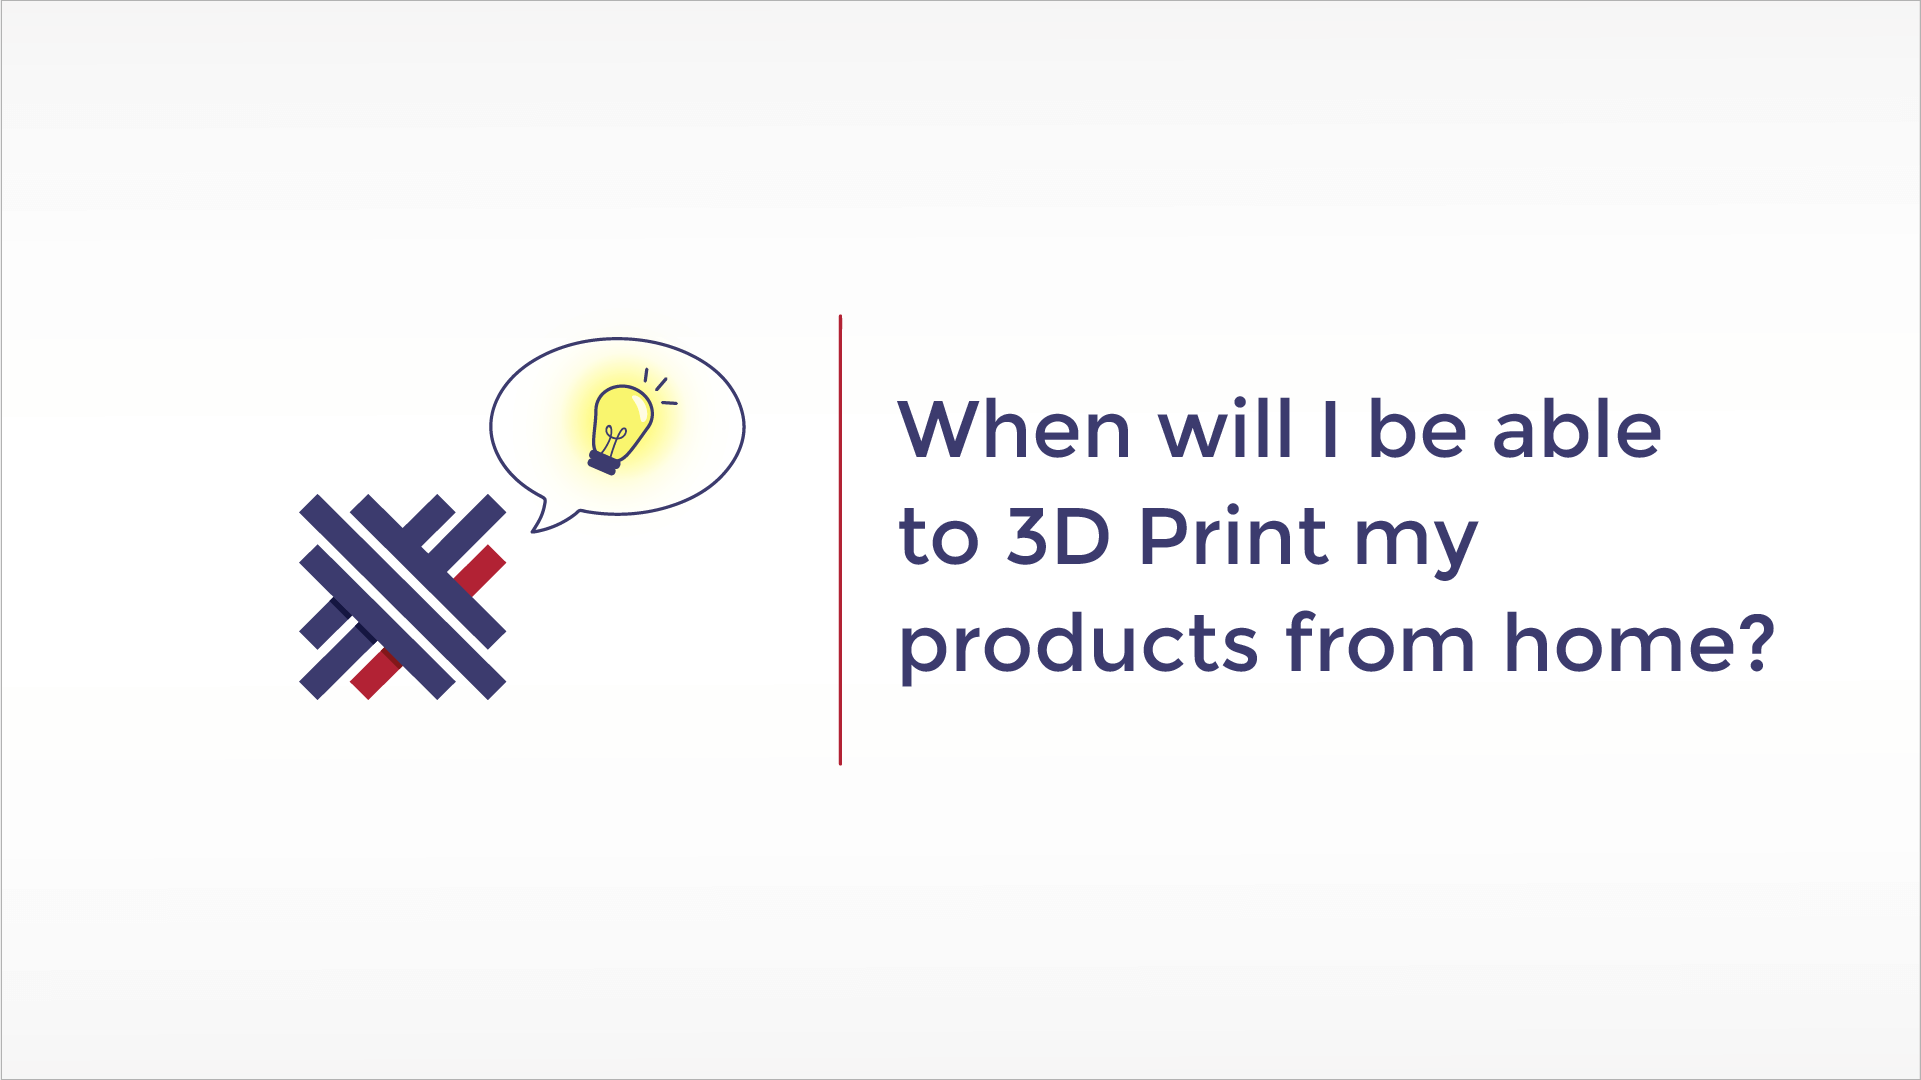 When will I be able to 3D Print my products from home?